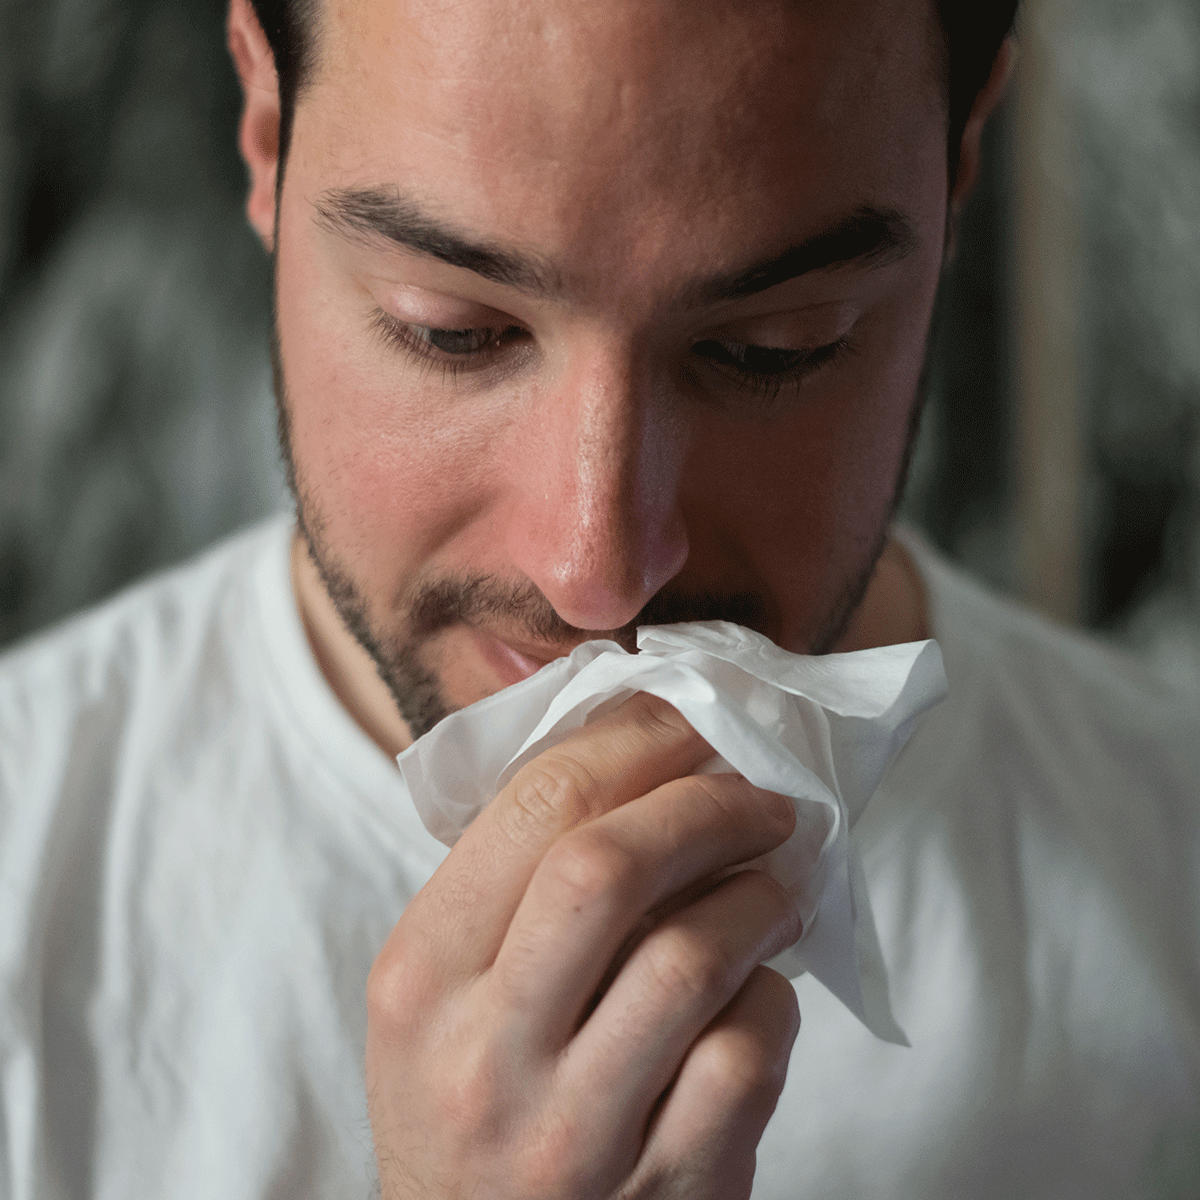 Man with stuffy nose